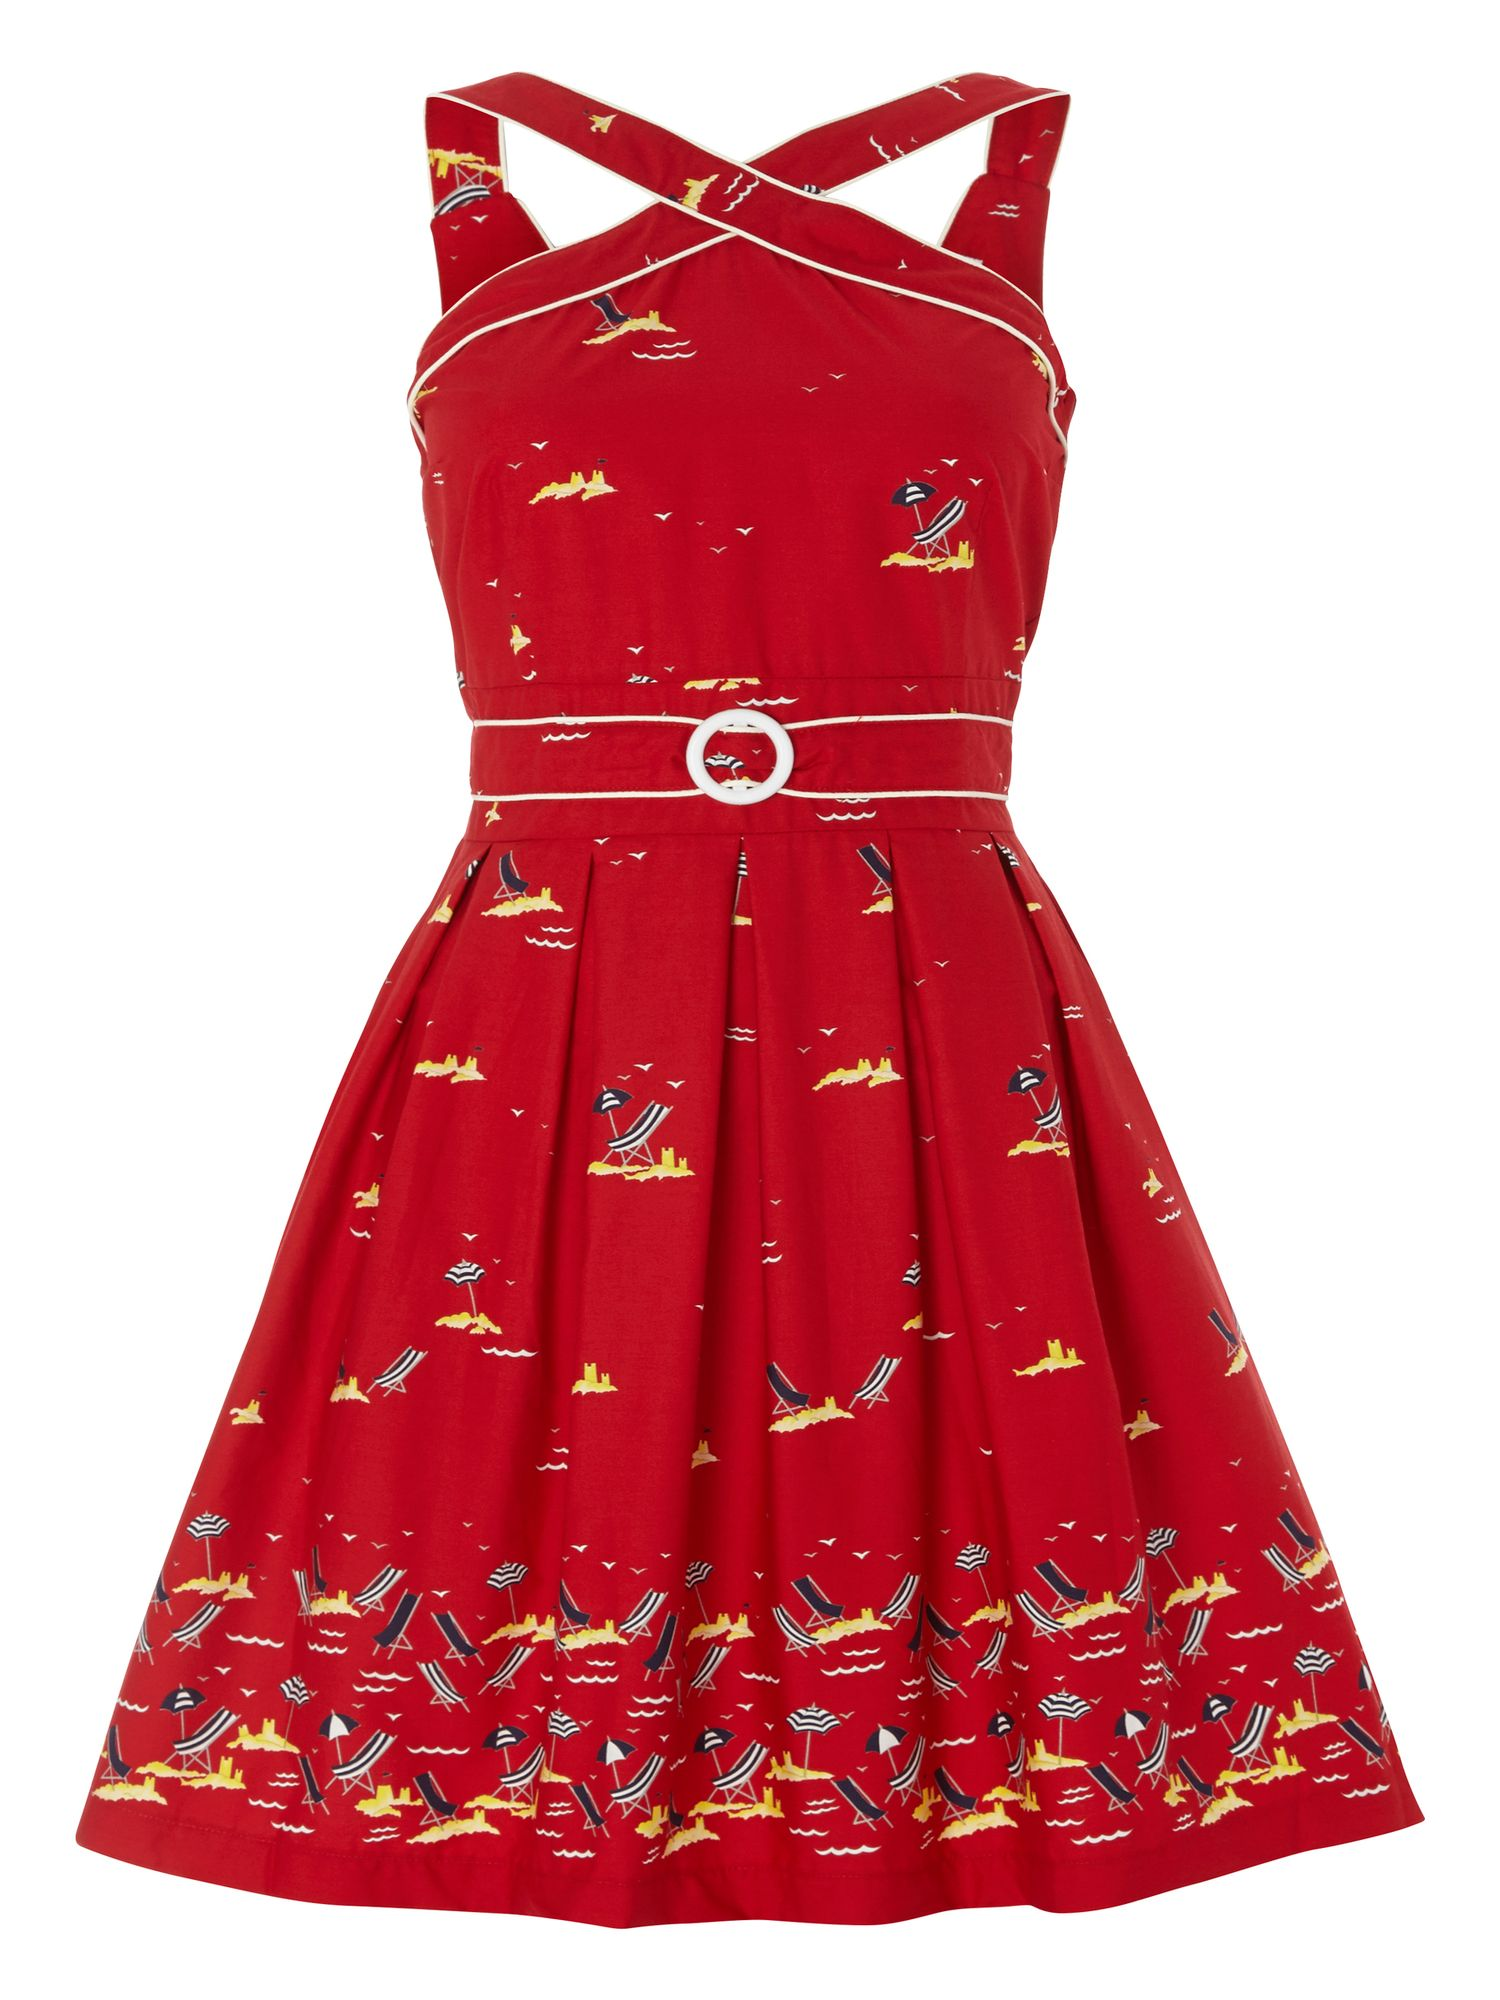 Trollied Dolly Cross My Heart Dress $33.00 AT vintagedancer.com